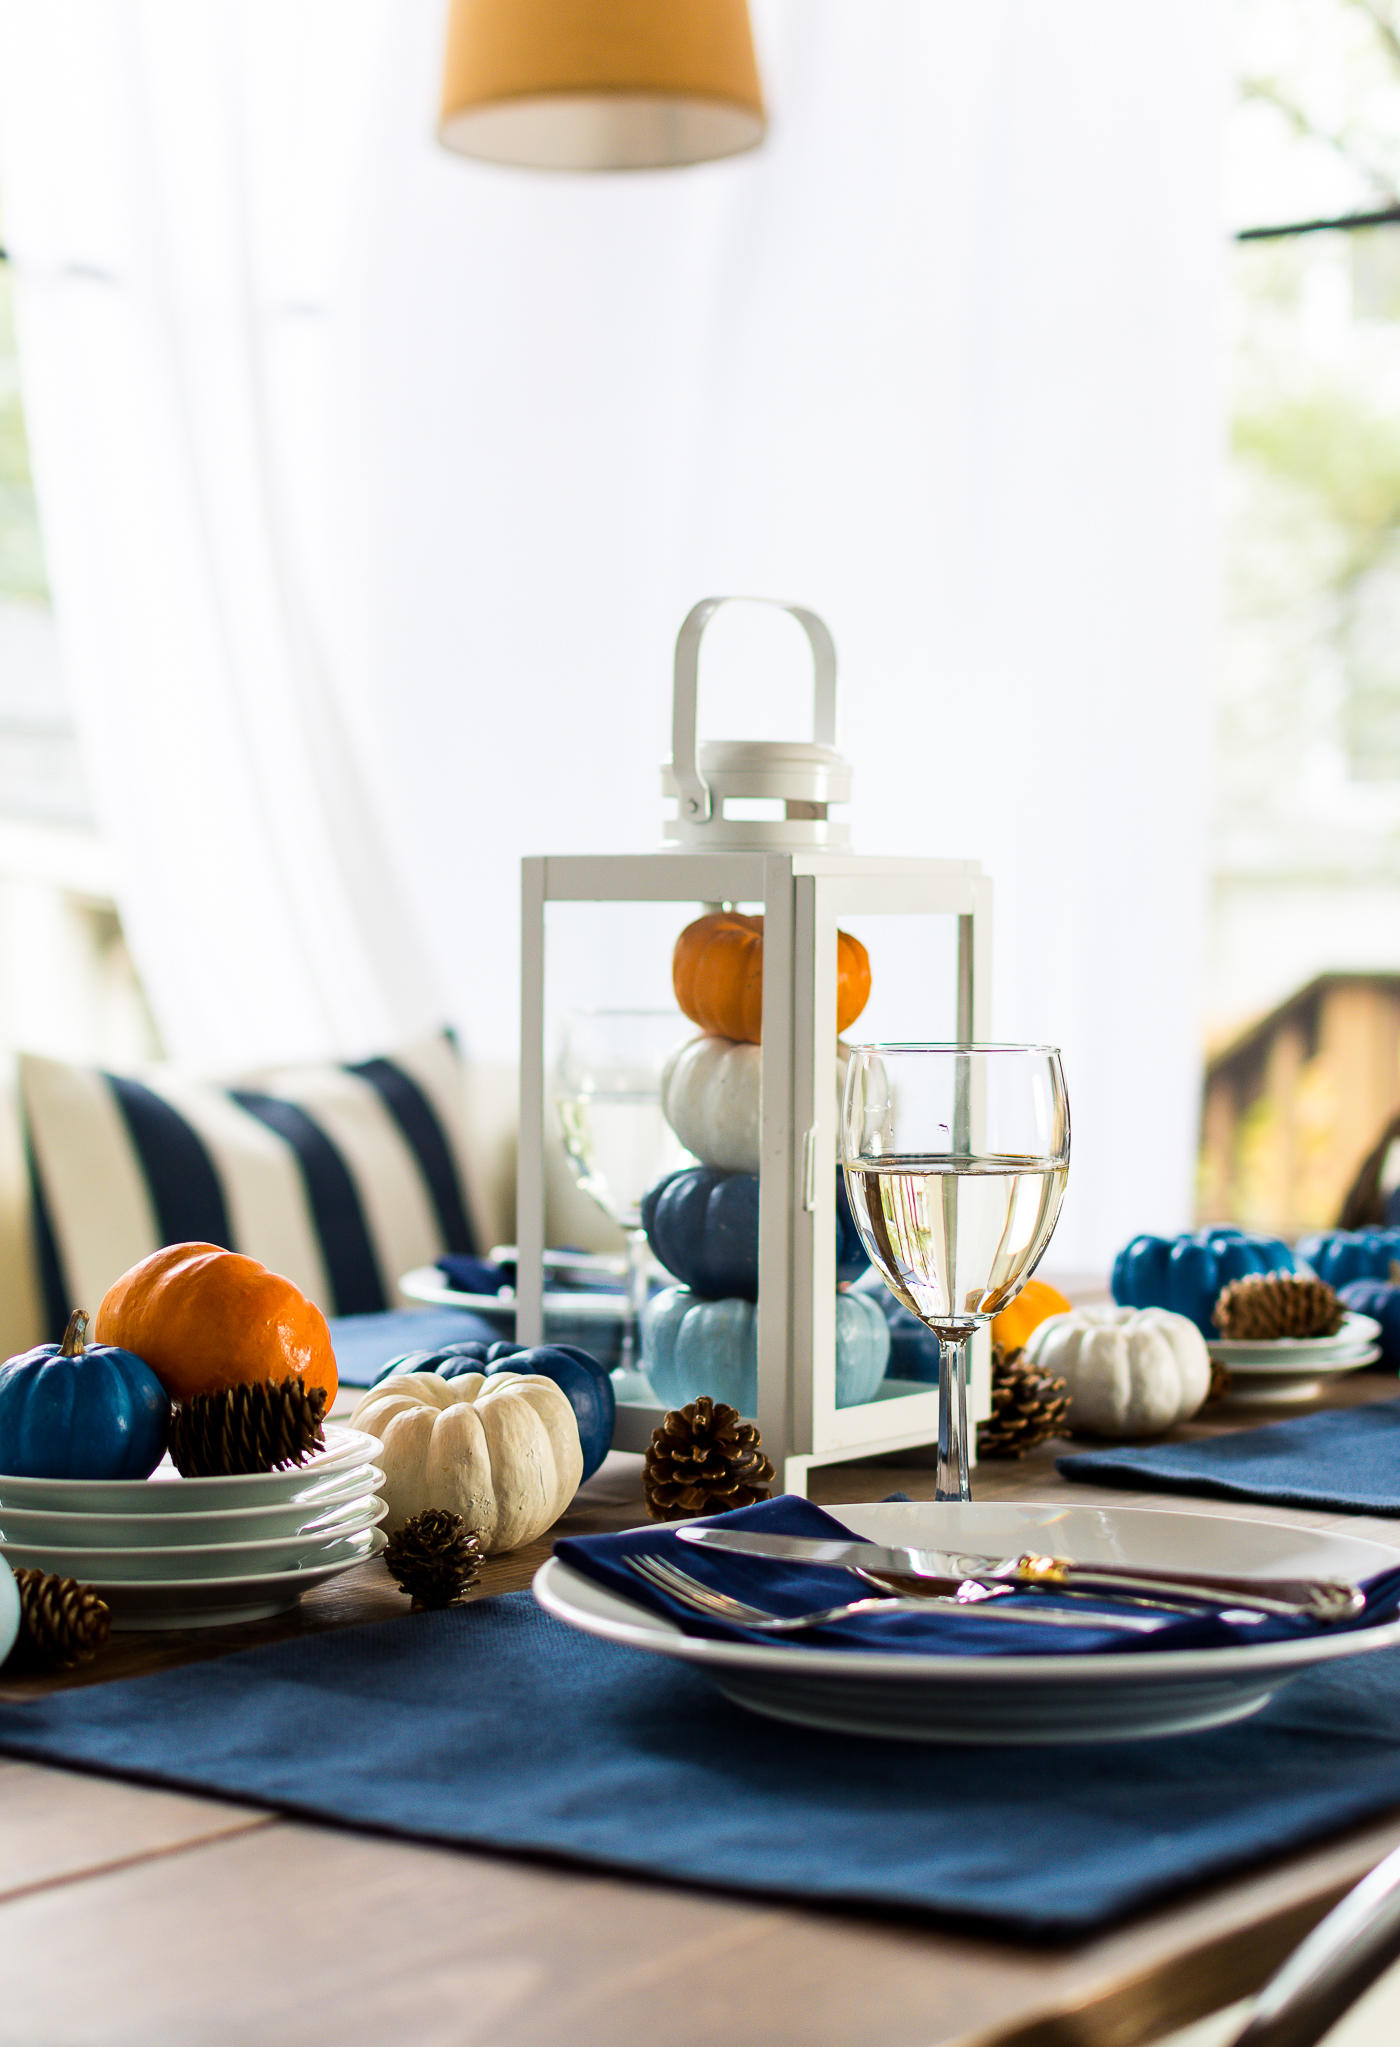 thanksgiving-table-setting-idea-navy-blue-white-orange-with-gallo-wine-pinot-grigio-itallstartedwithpait-com-20